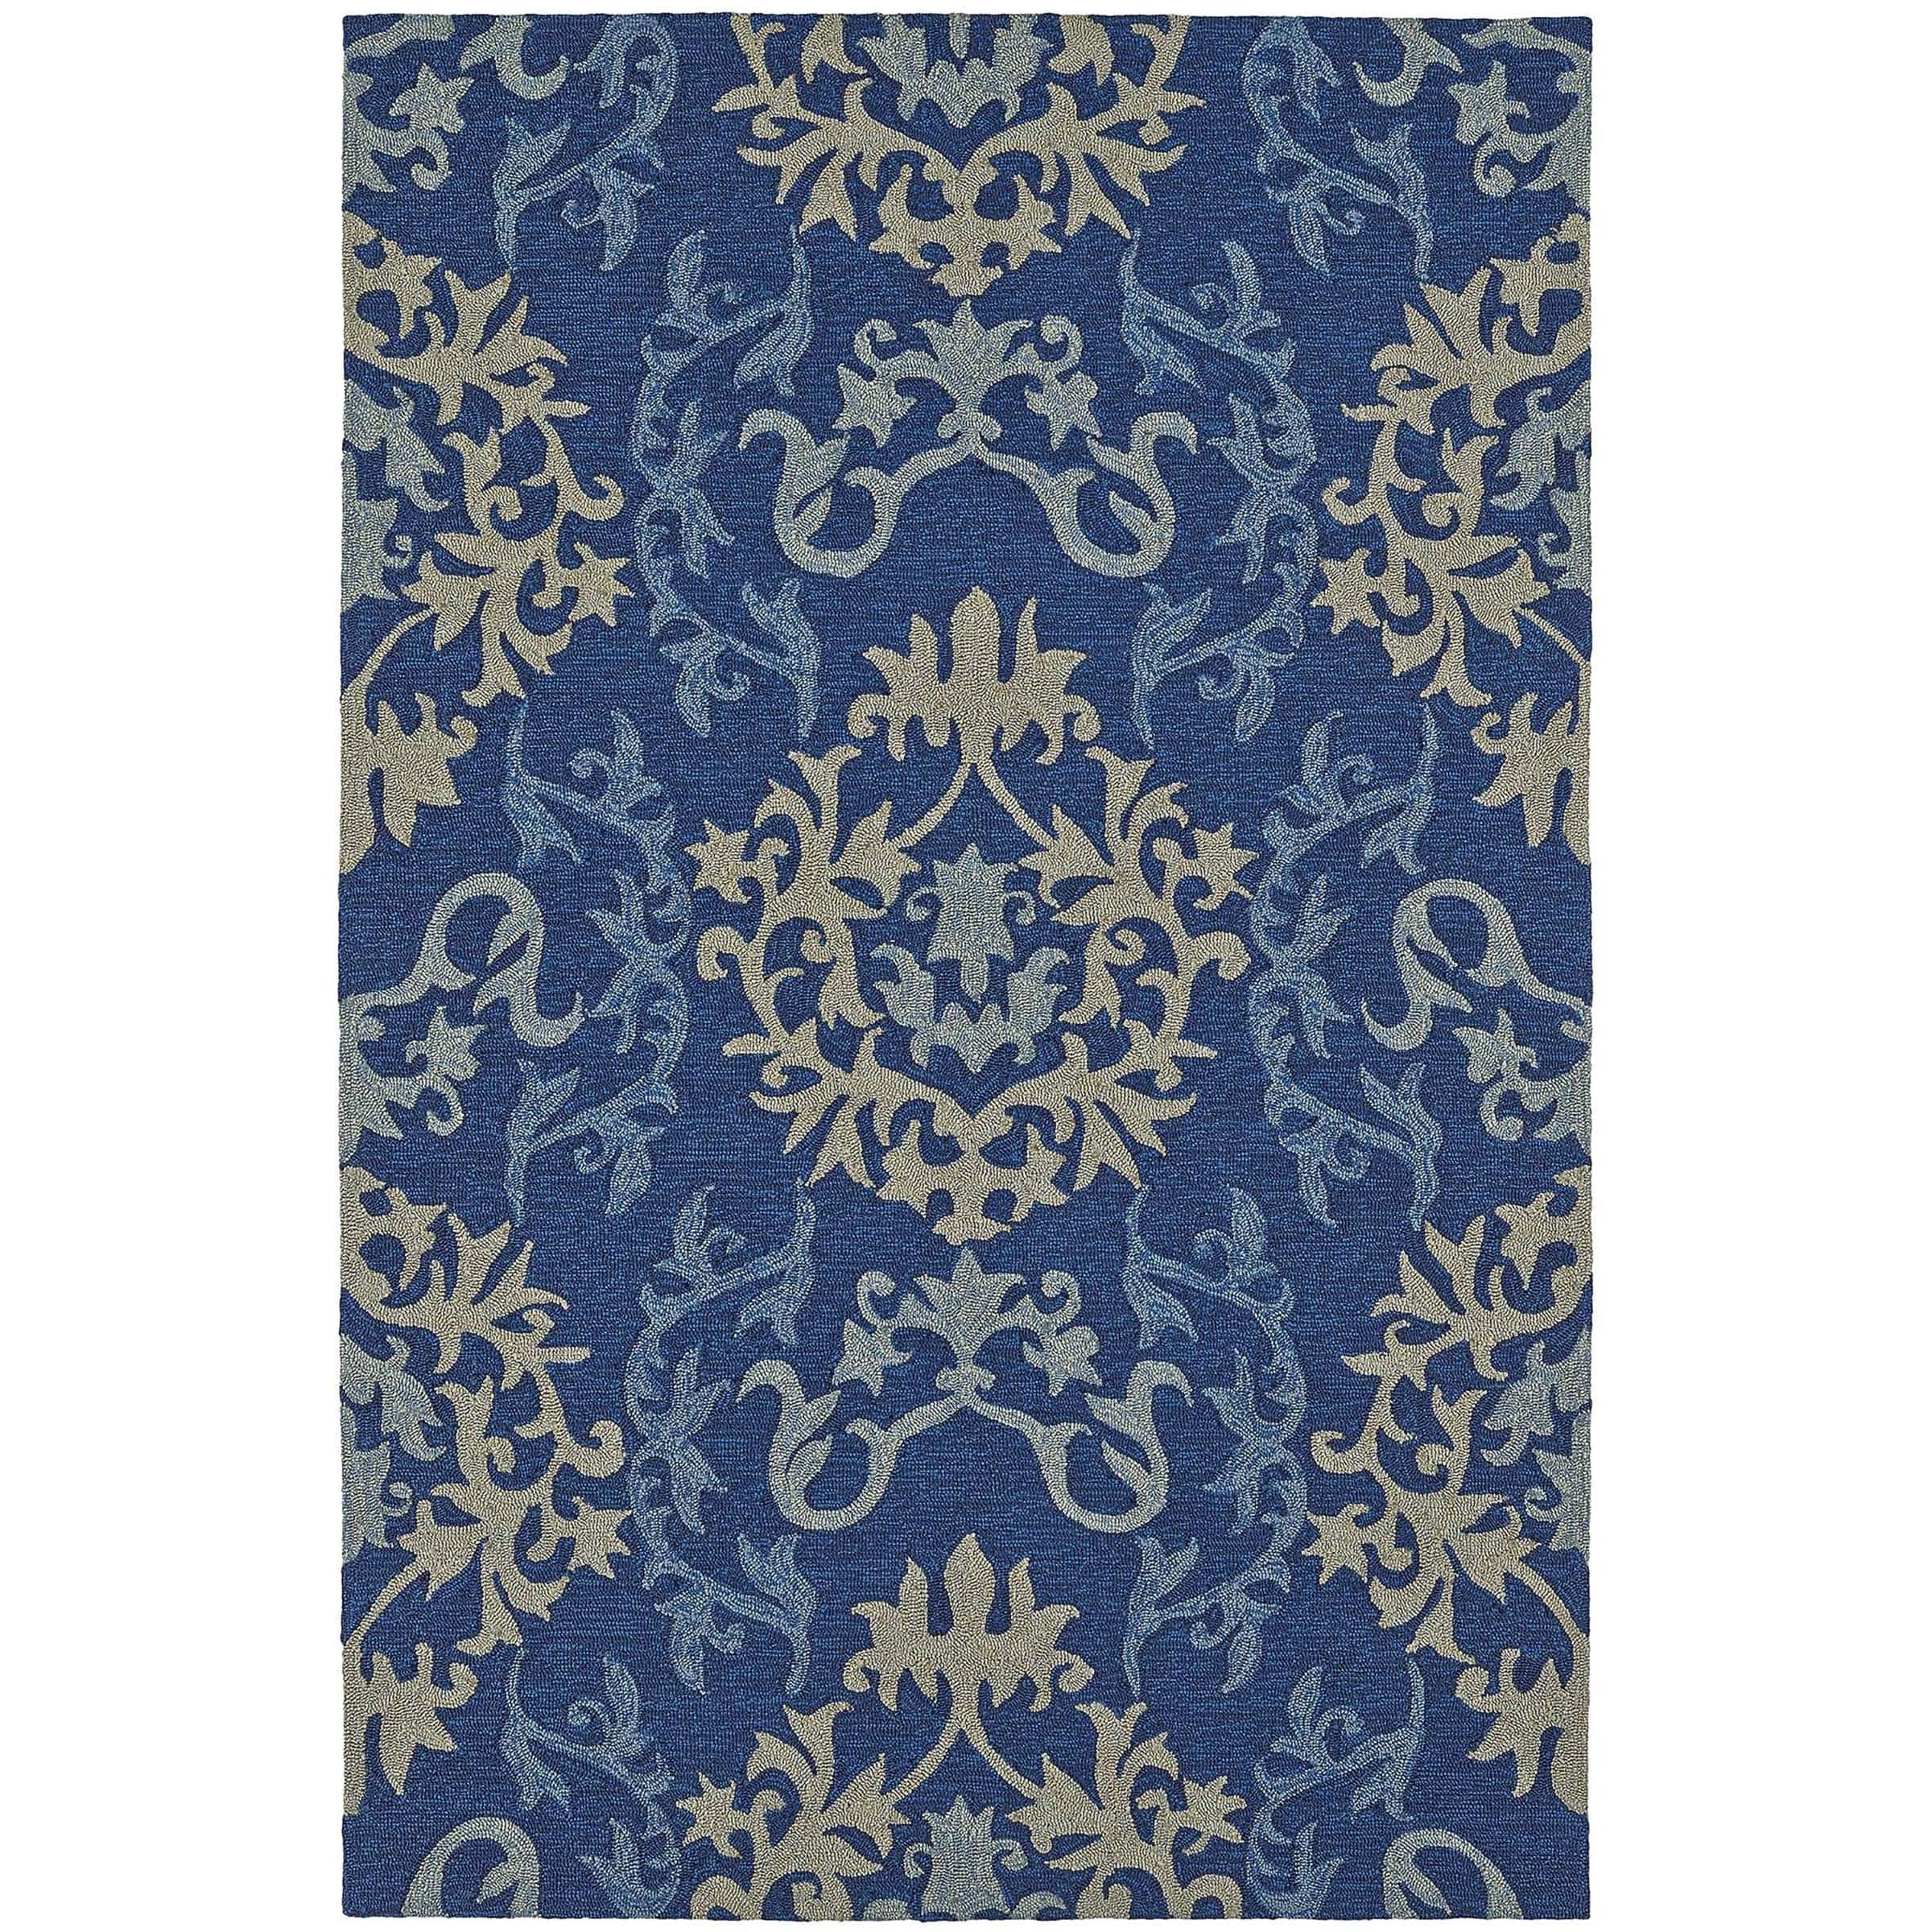 addison rugs addison venice blue damask indoor outdoor. Black Bedroom Furniture Sets. Home Design Ideas